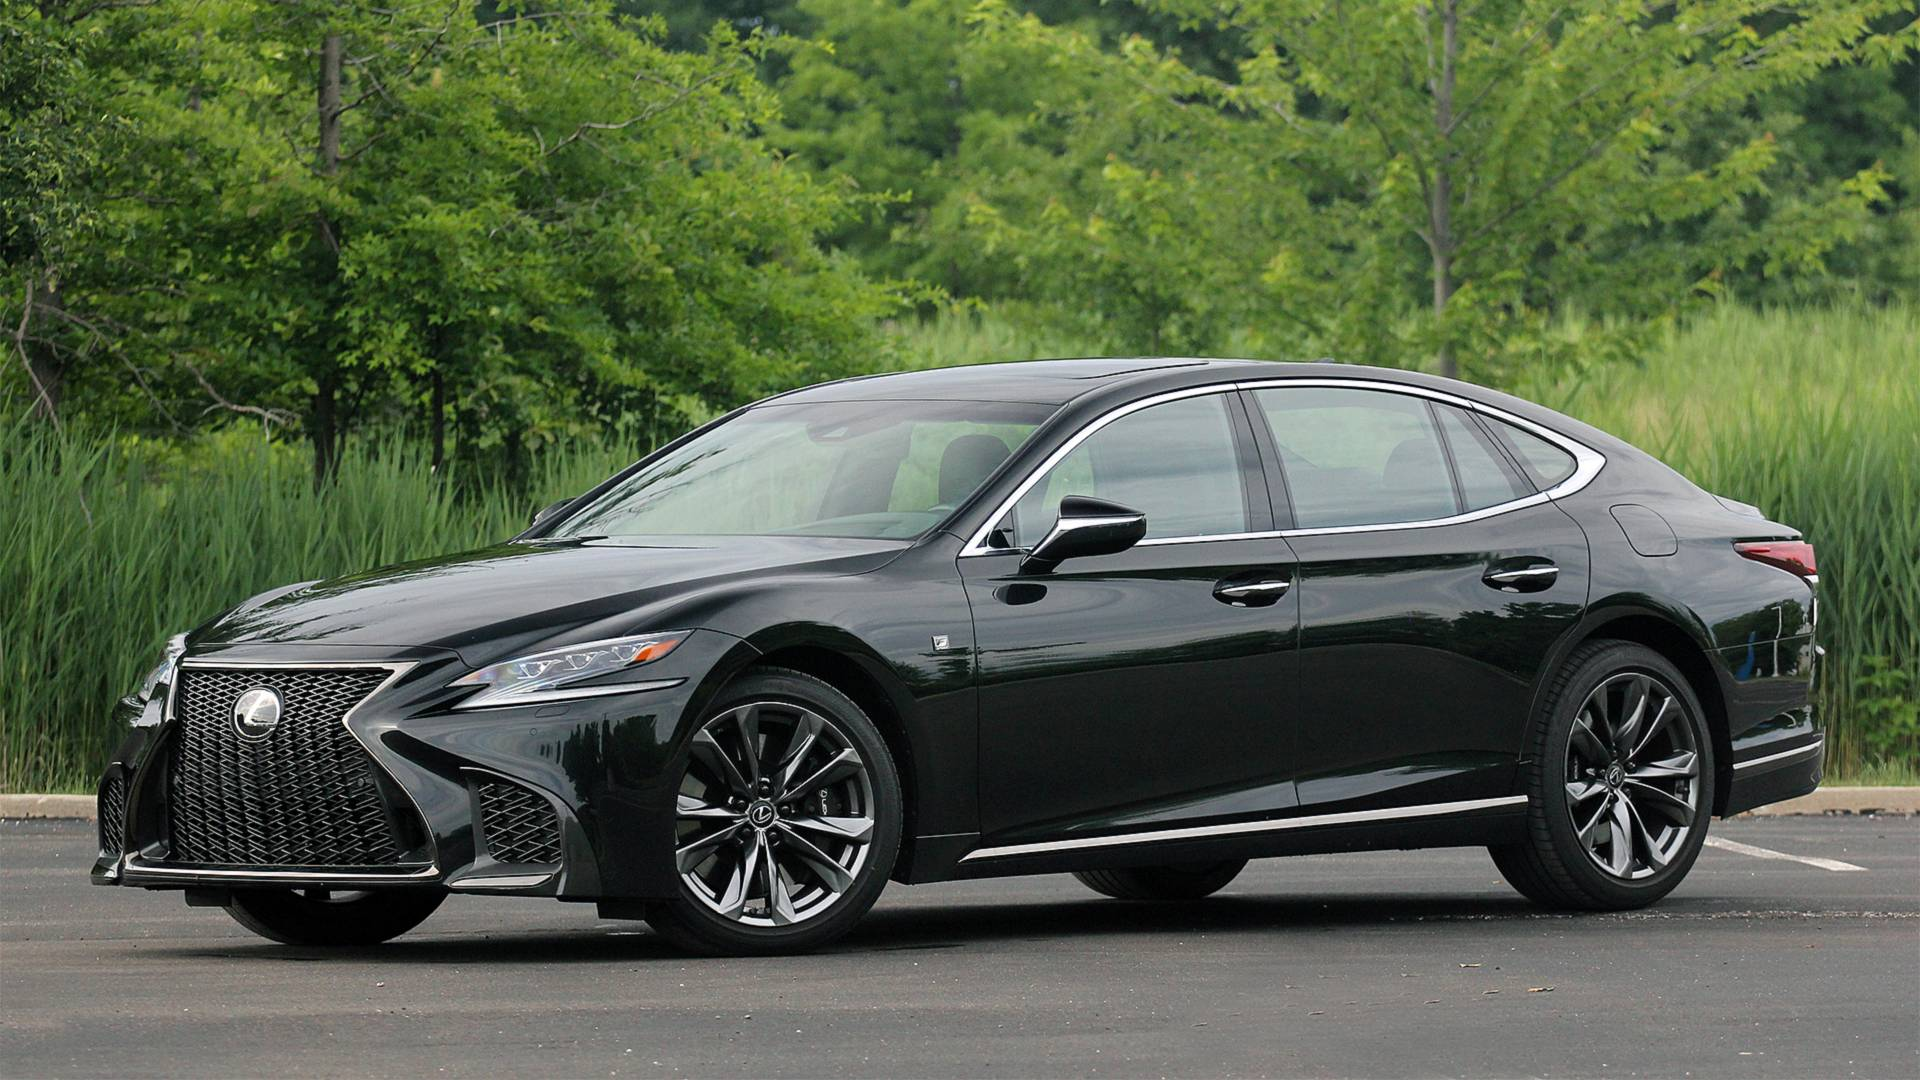 2018 Lexus Ls 500 F Sport Middle Of The Pack